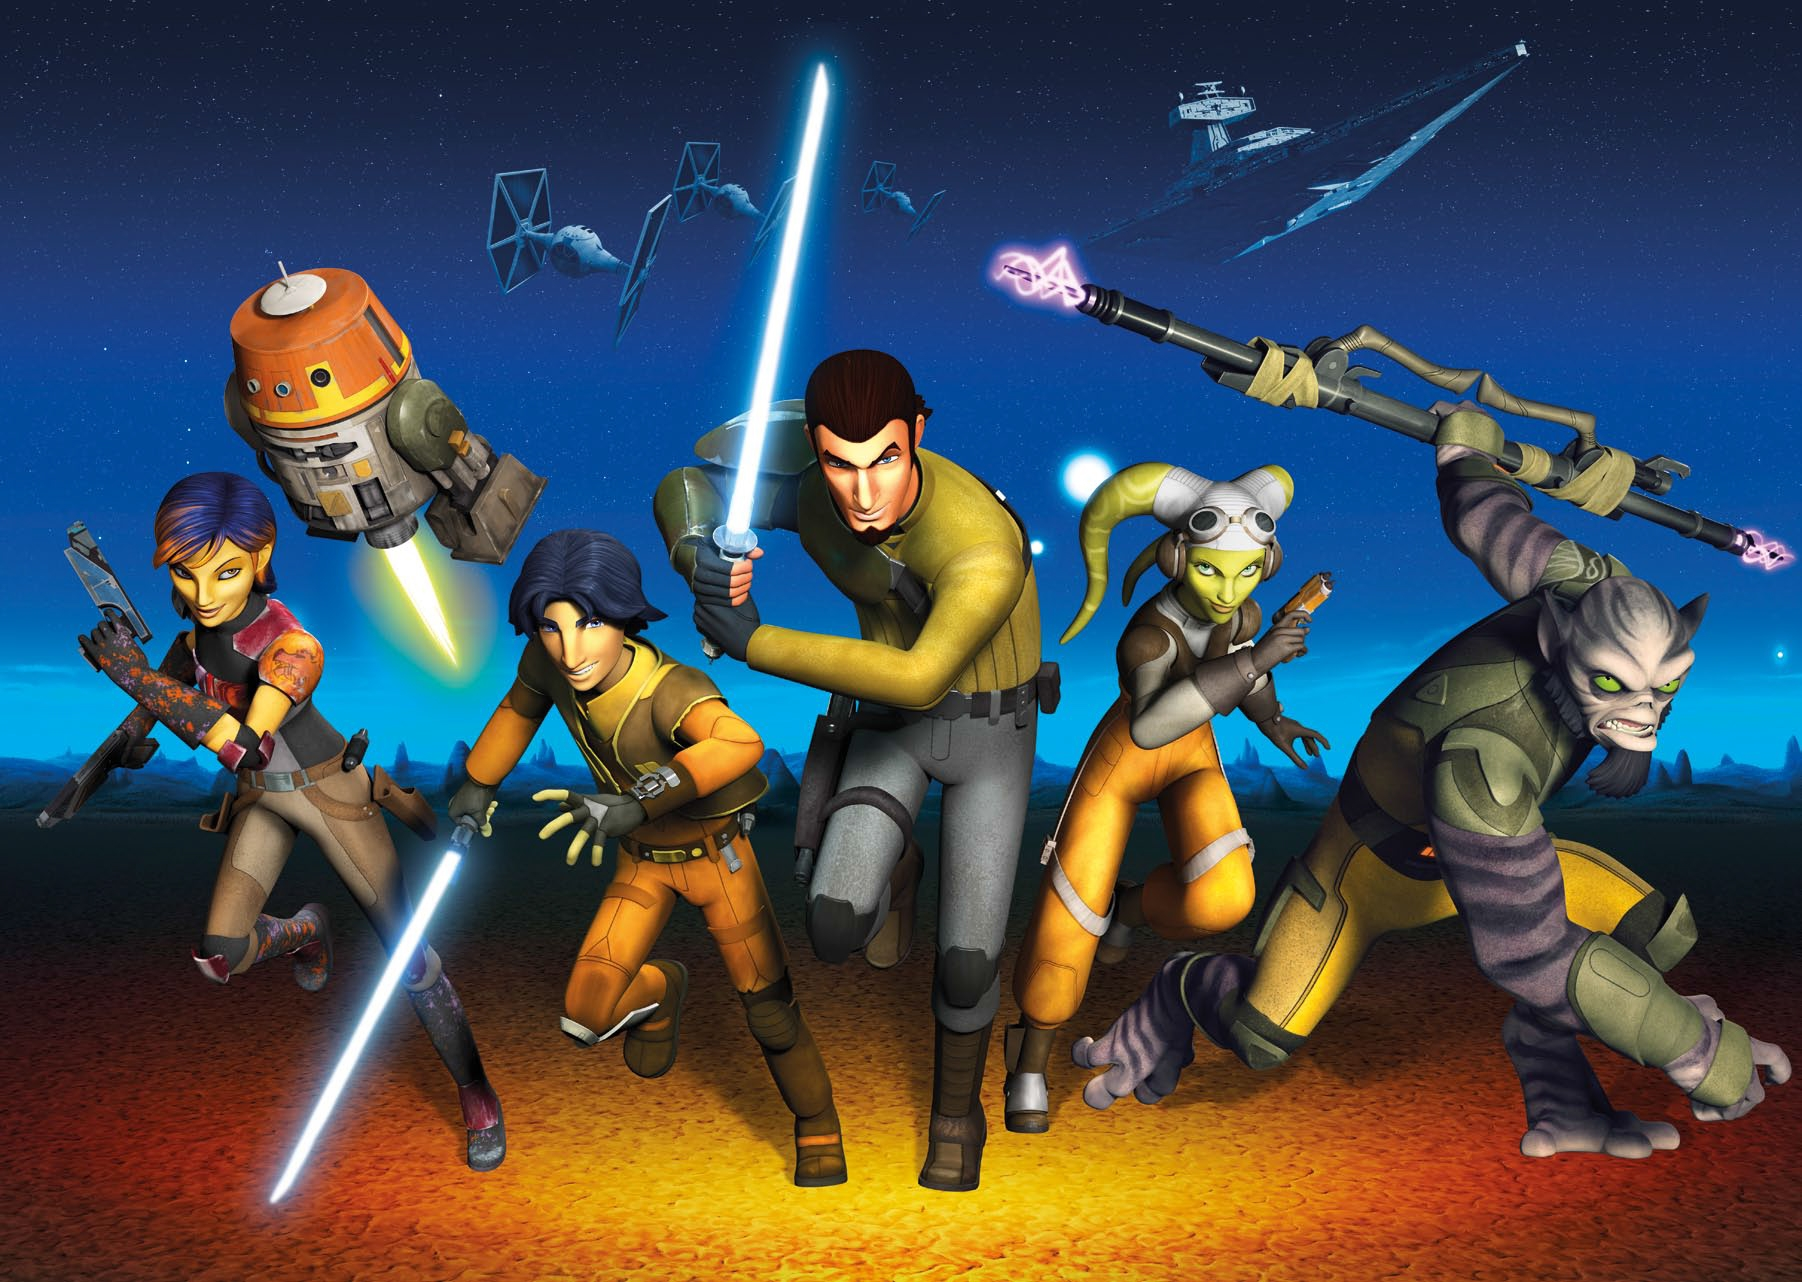 Poster XXL Star Wars Rebels Run - Panoramique - KOMAR